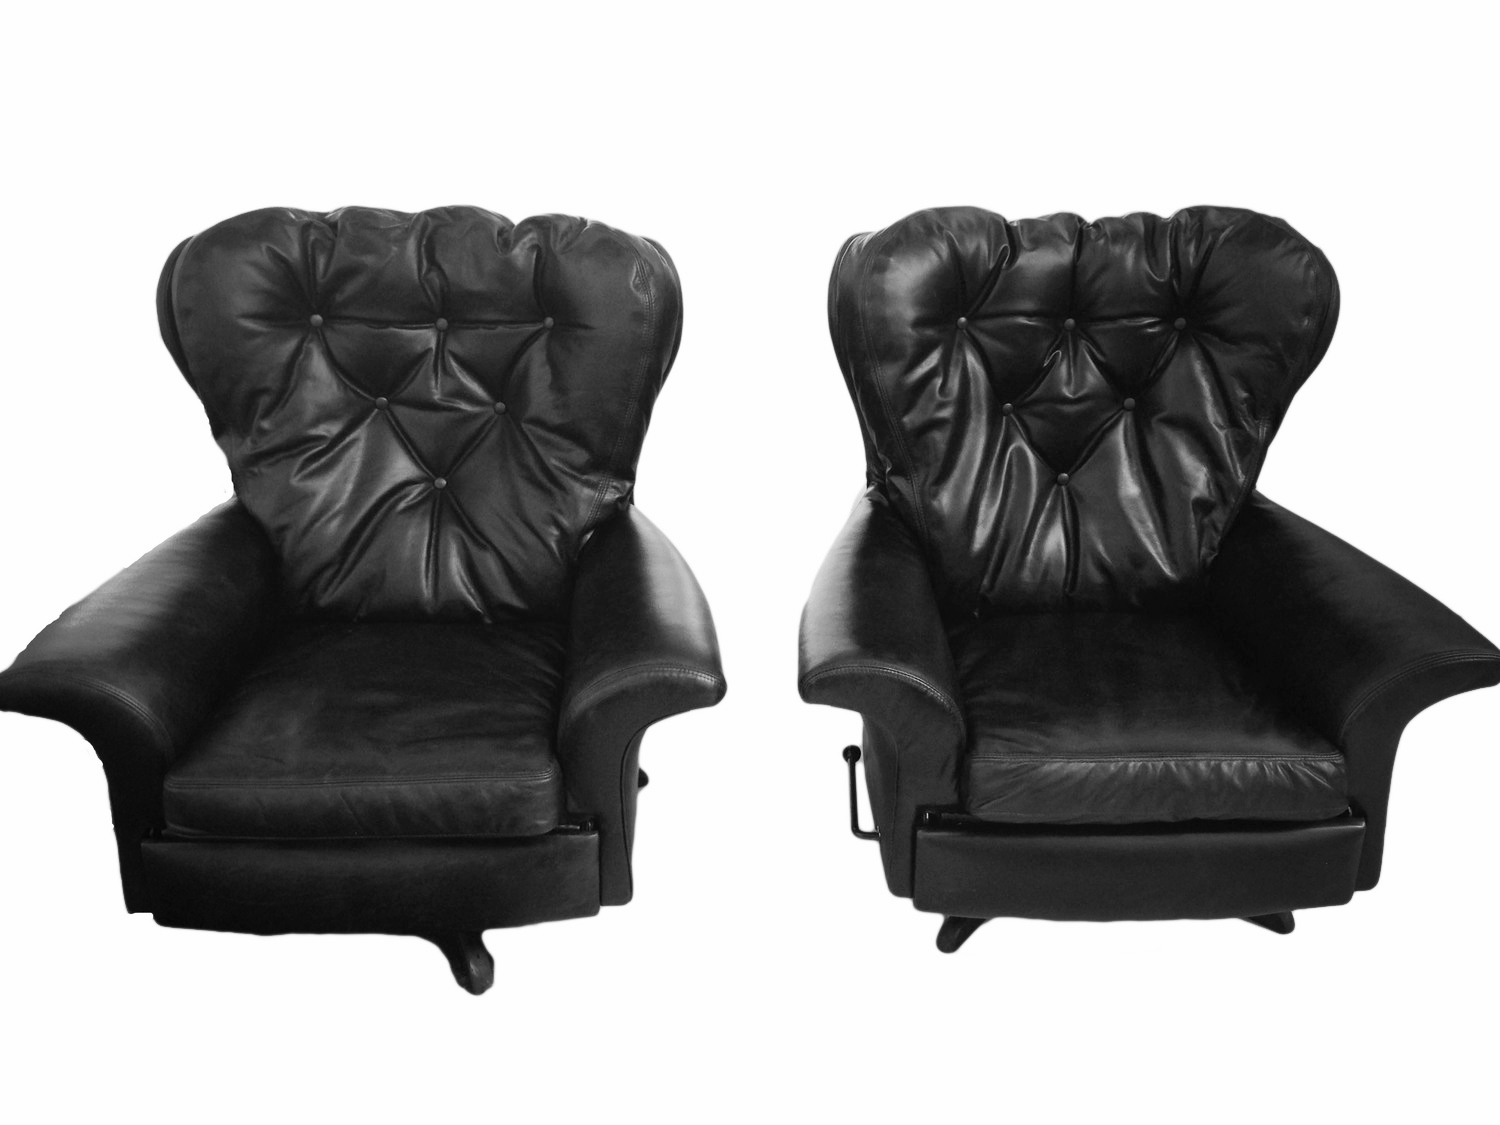 2 Leather Arm Chairs.jpg